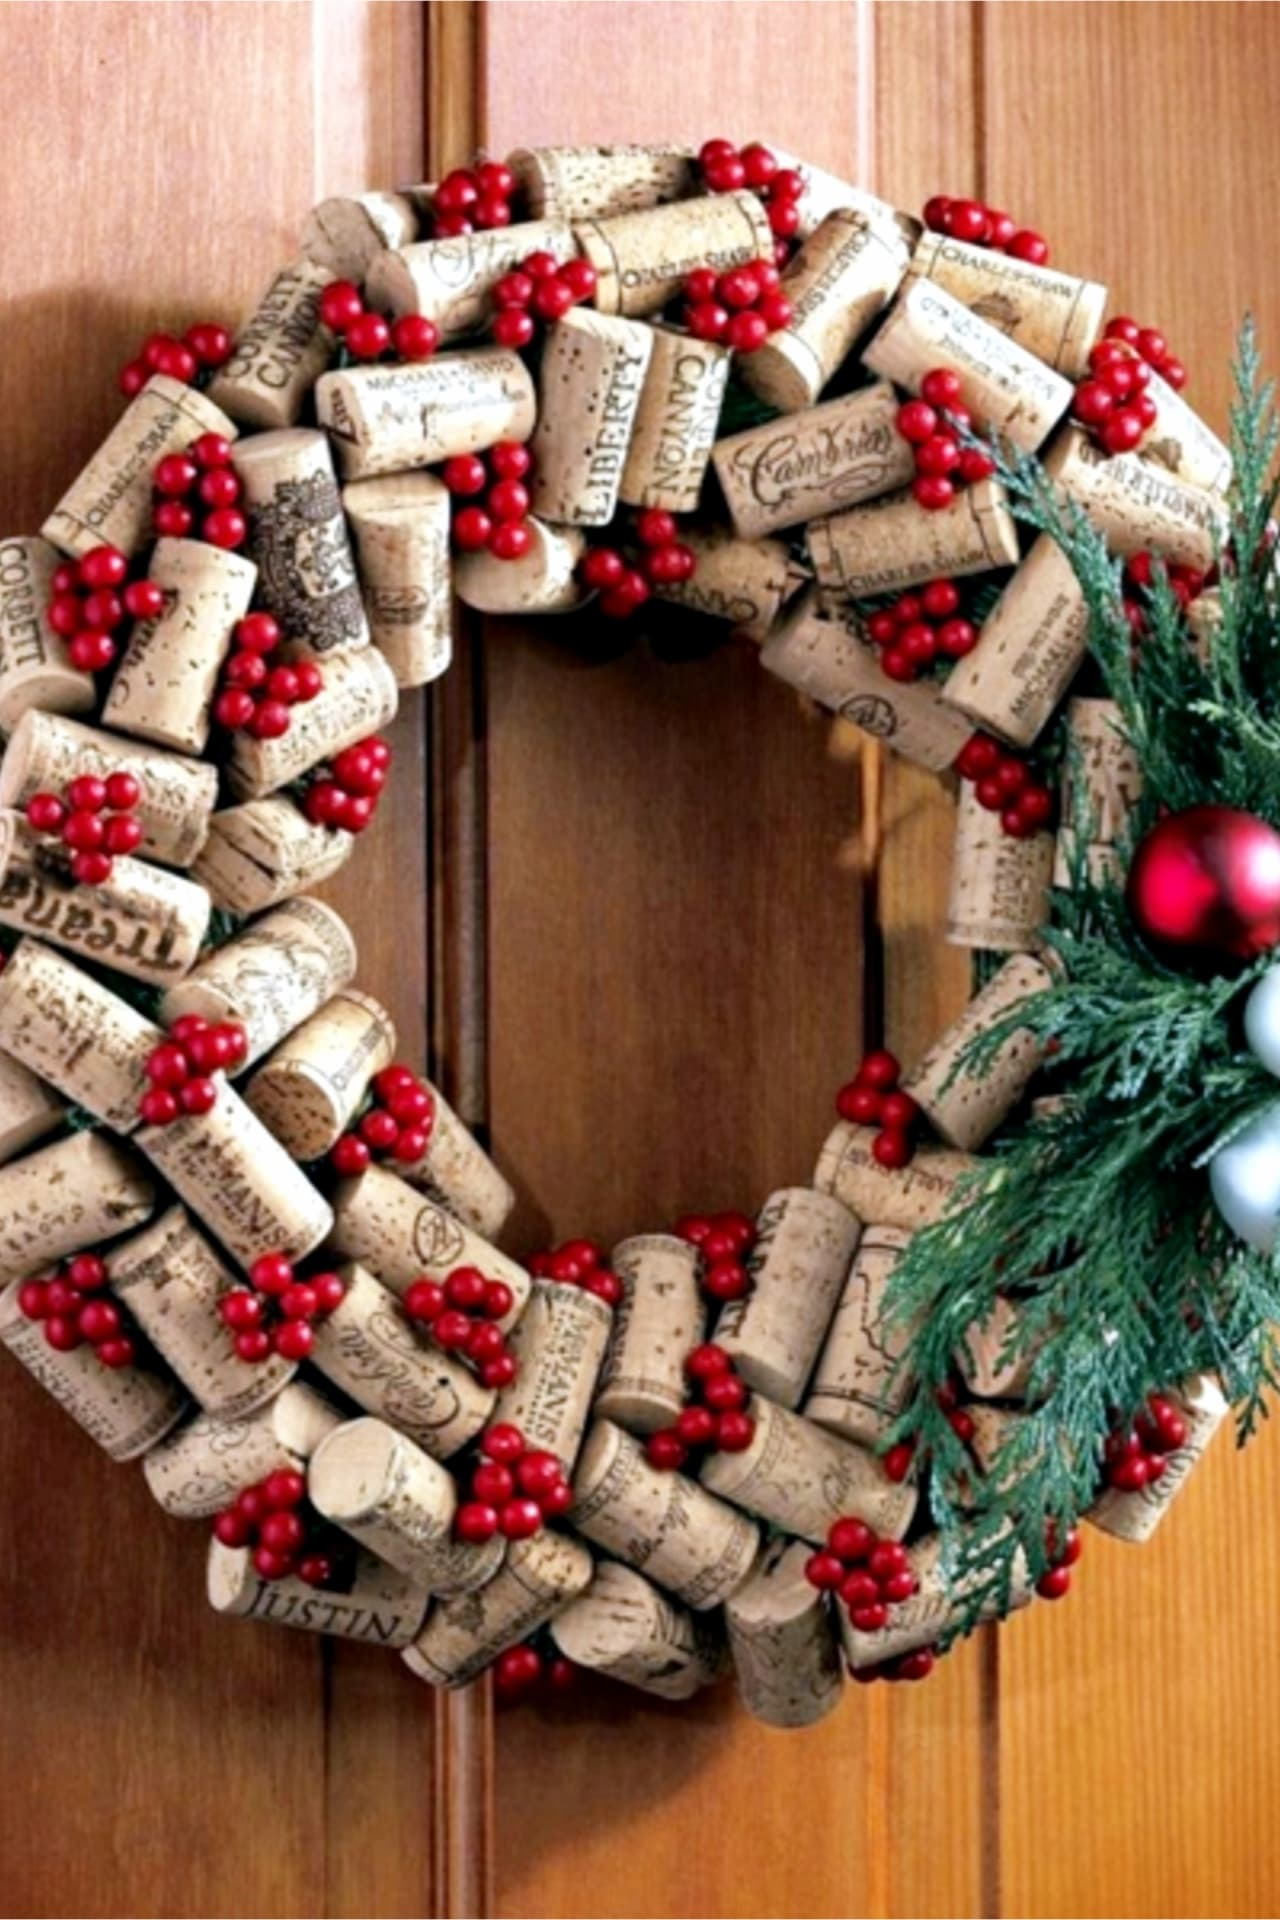 DIY Christmas wreath ideas to make for Christmas on a Budget - make a Christmas wreath for your front door or for a gift out of wine corks